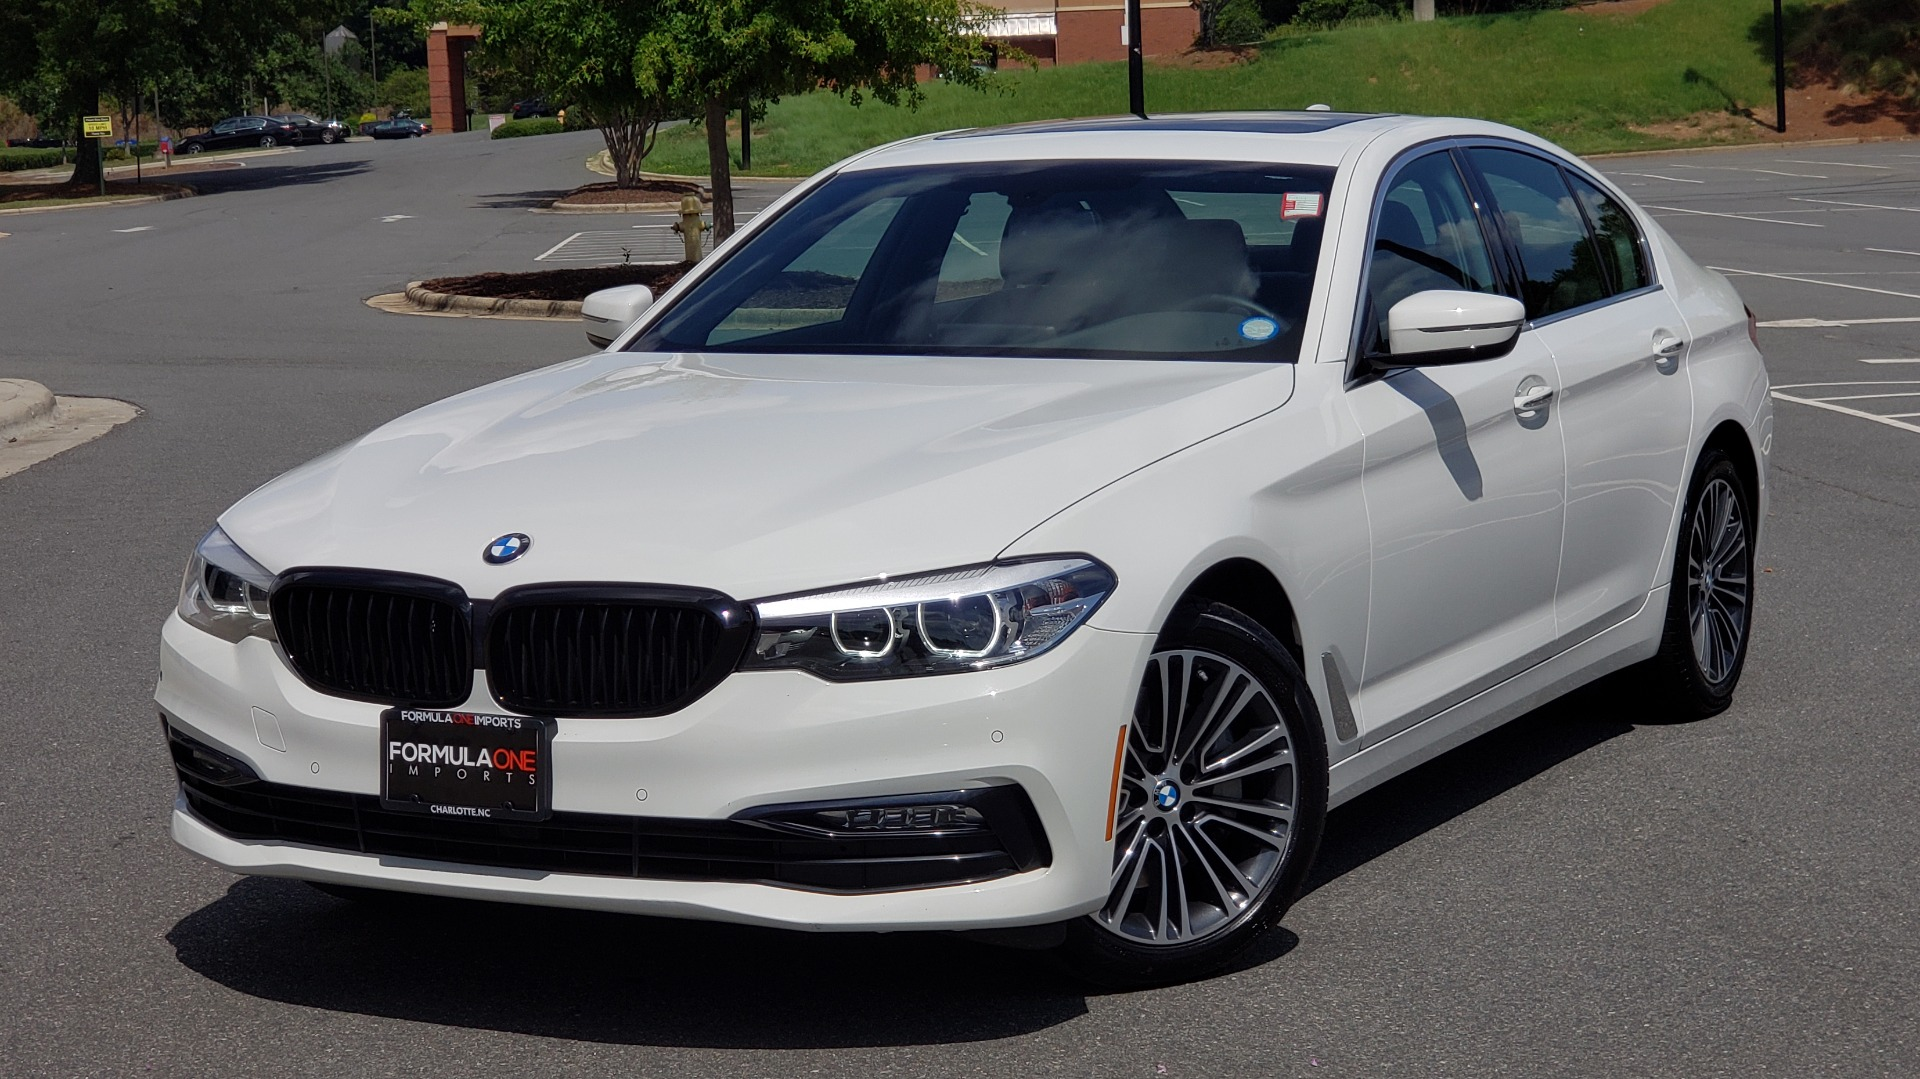 Used 2018 BMW 5 SERIES 530I XDRIVE PREMIUM / PARK ASST / NAV / SUNROOF / REARIEW for sale $37,795 at Formula Imports in Charlotte NC 28227 1